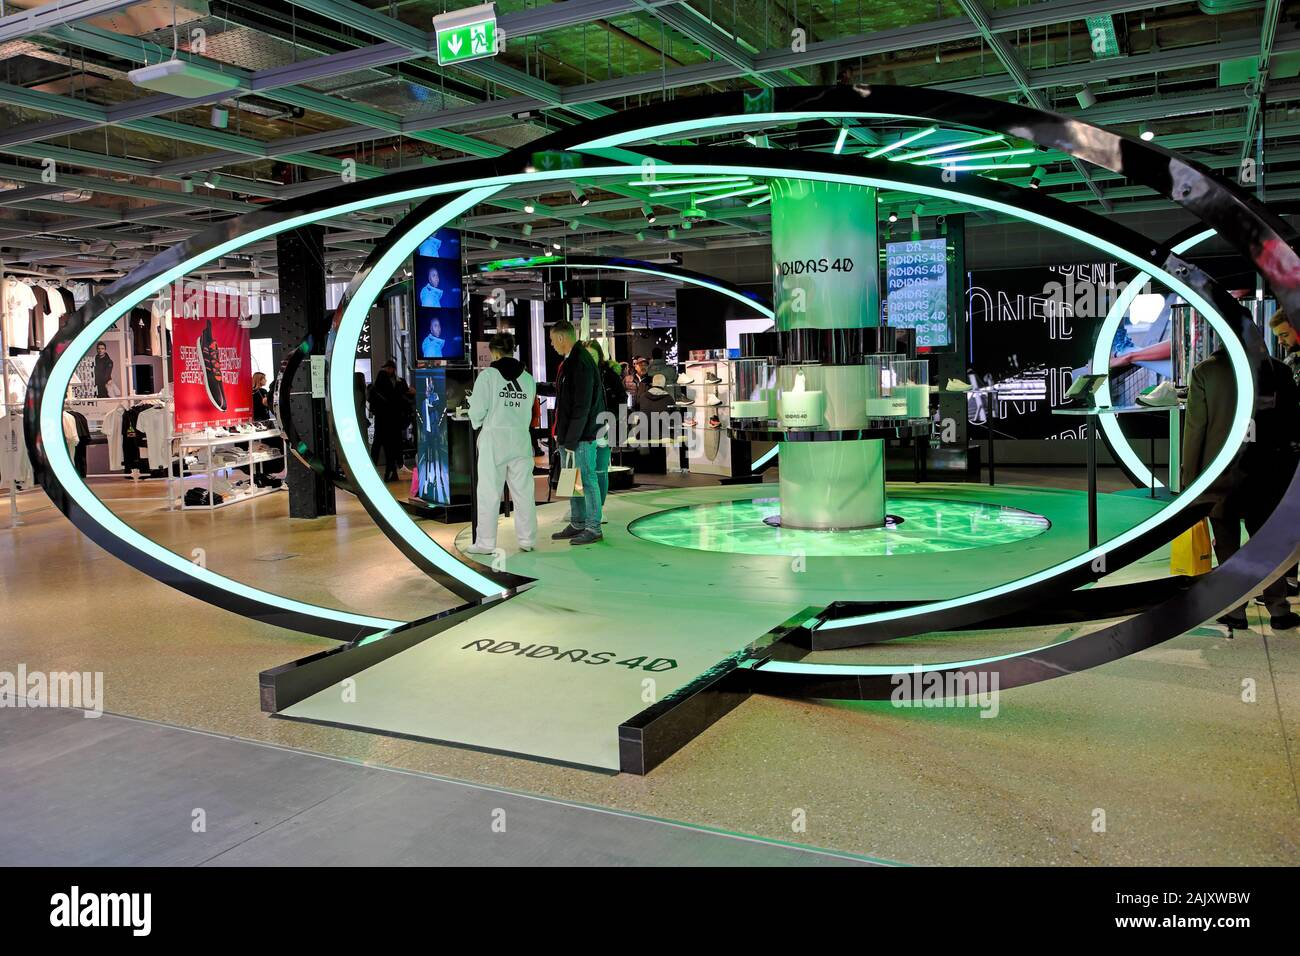 Poderoso portátil a pesar de  Adidas store interior with worker and customers in Oxford Street London  England UK KATHY DEWITT Stock Photo - Alamy